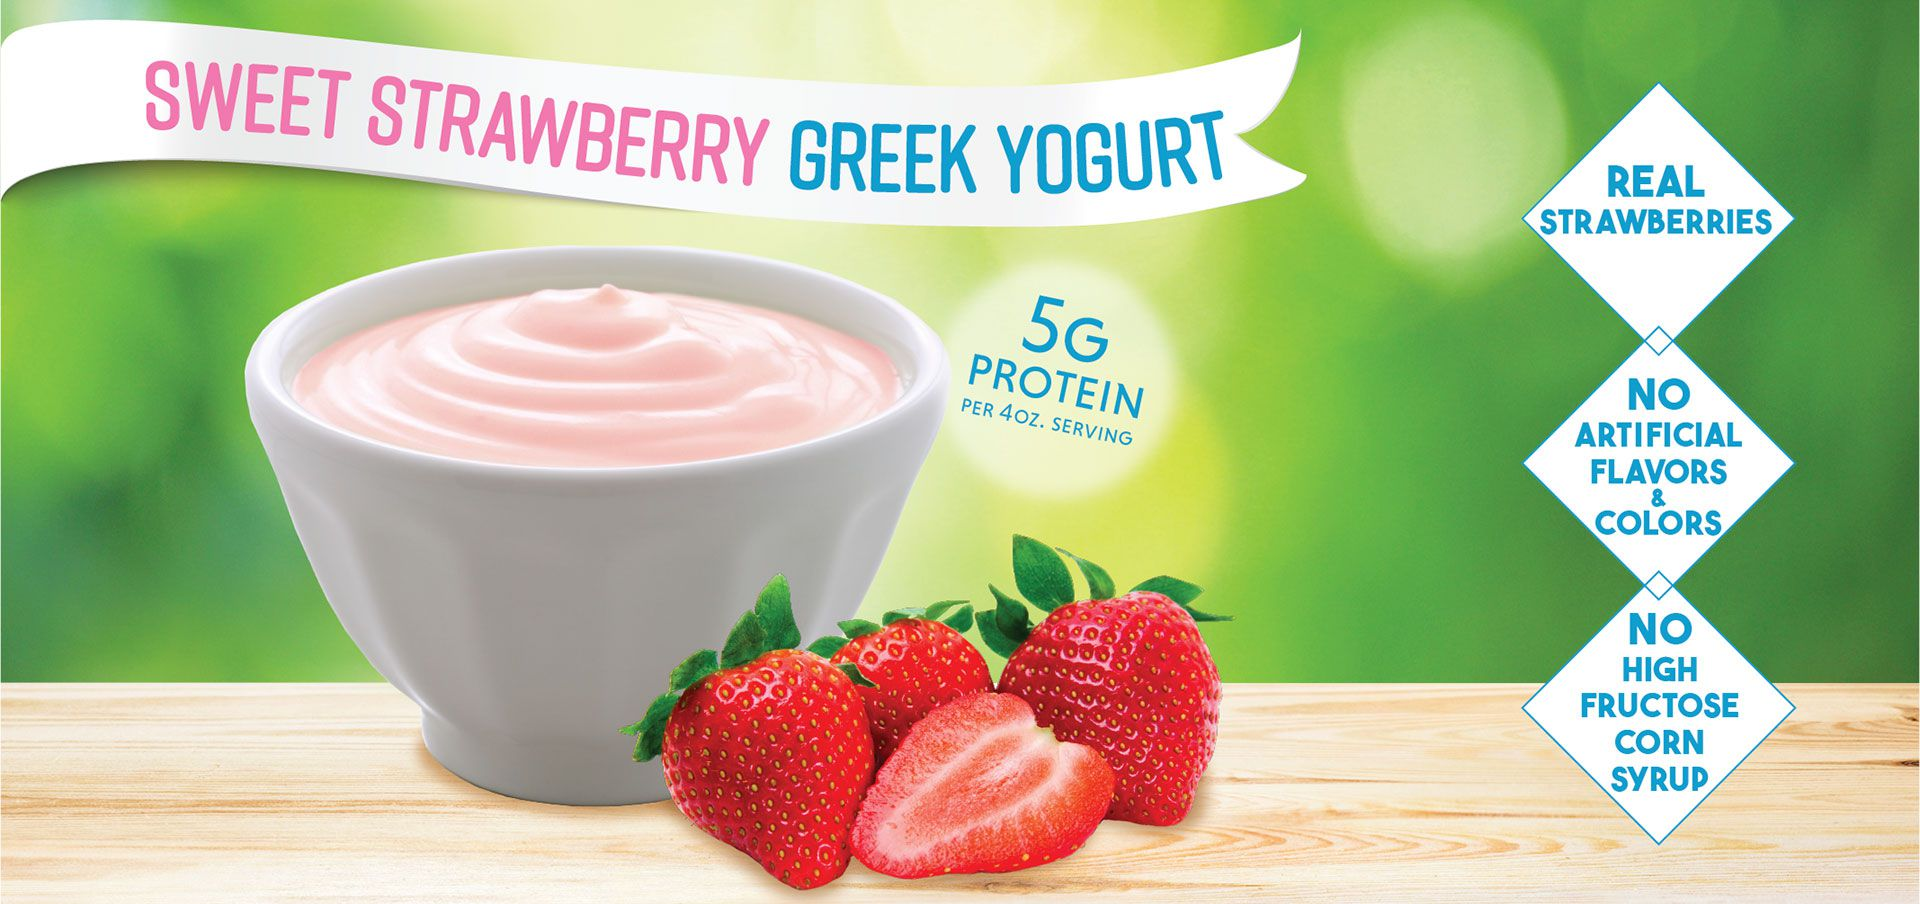 sweet strawberry greek yogurt label image